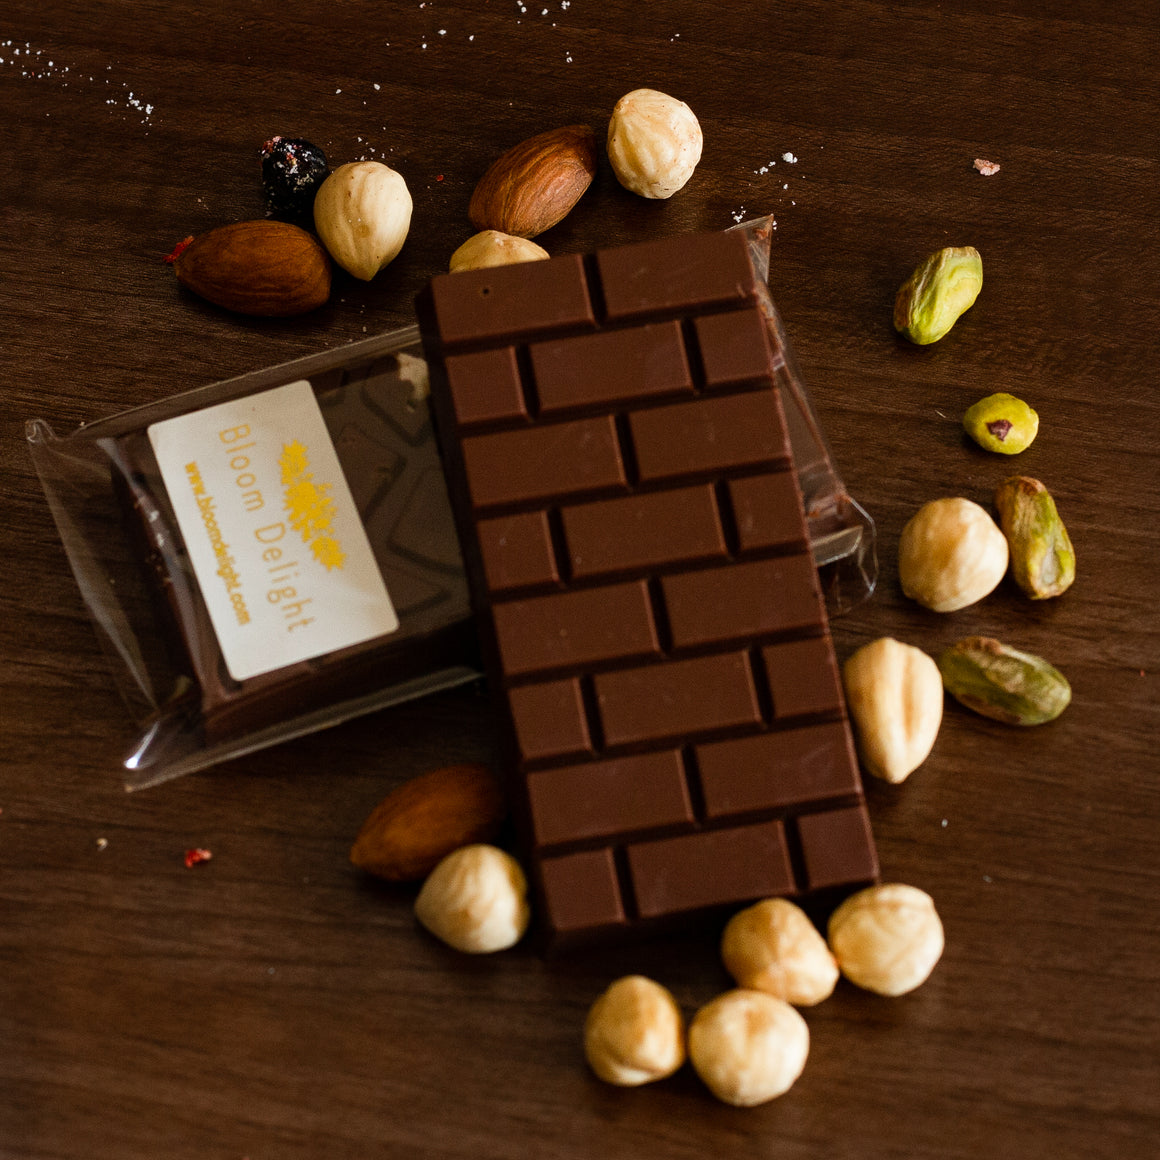 free from sugar free dairy free soy free artisan chocolate bar